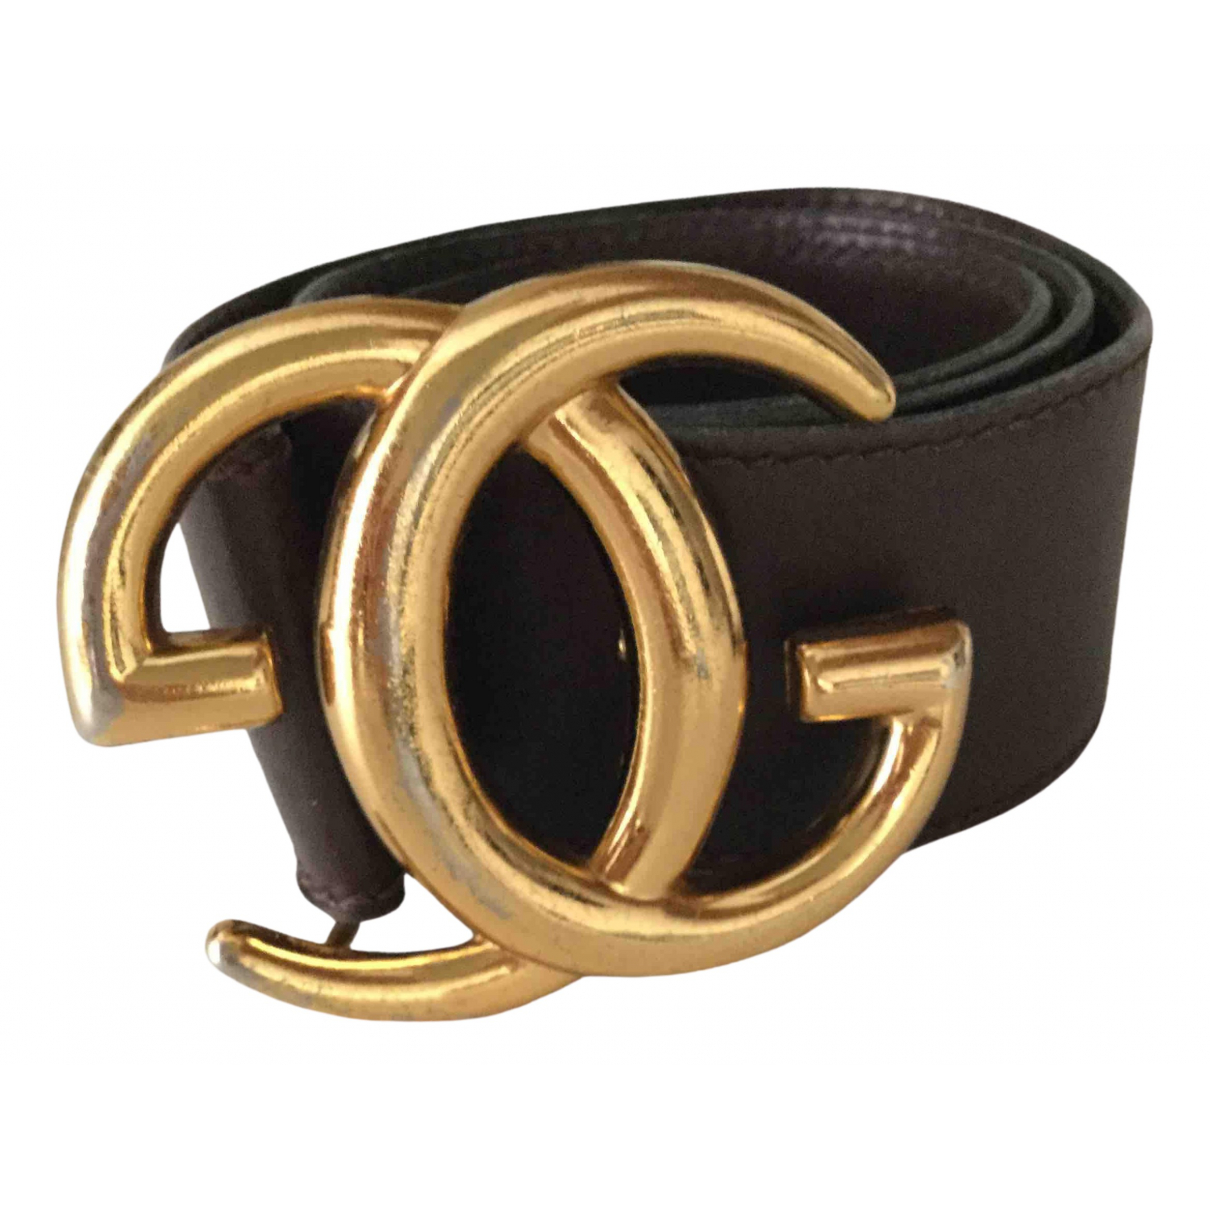 Gucci \N Brown Leather belt for Women XS International